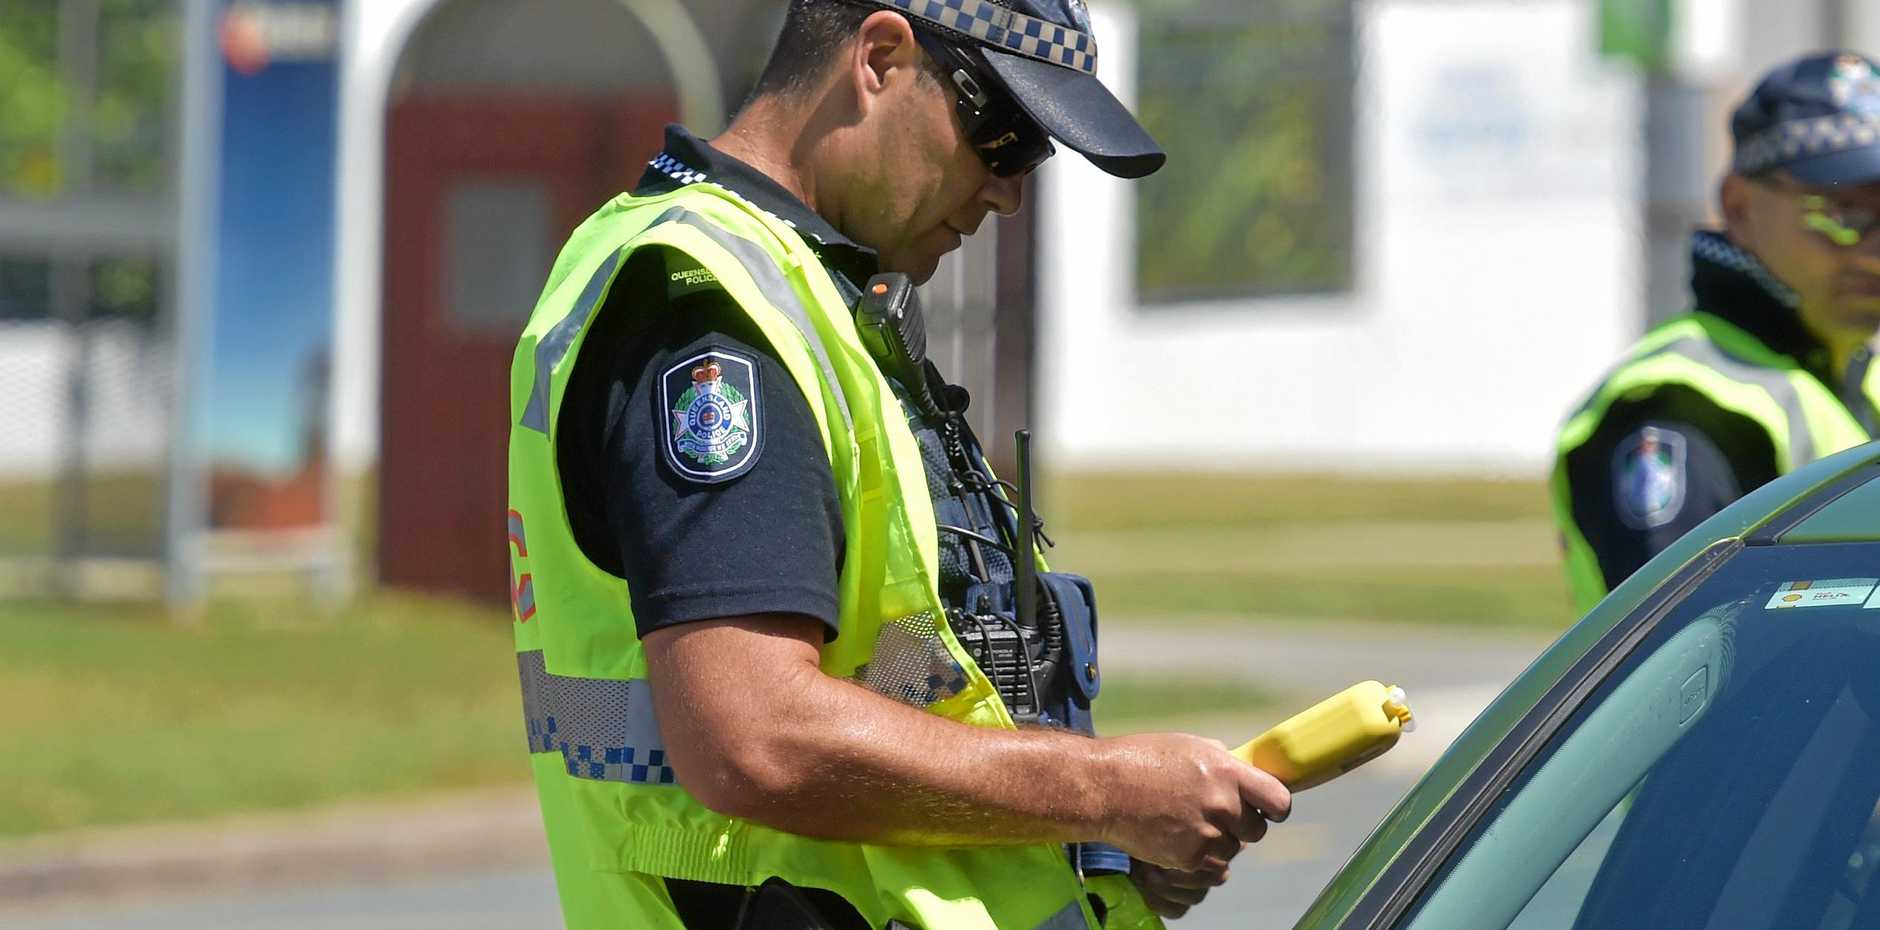 Travis Wayne Cowie was caught speeding about 50km/h over the speed limit in a 70km zone with a BAC of 0.127.